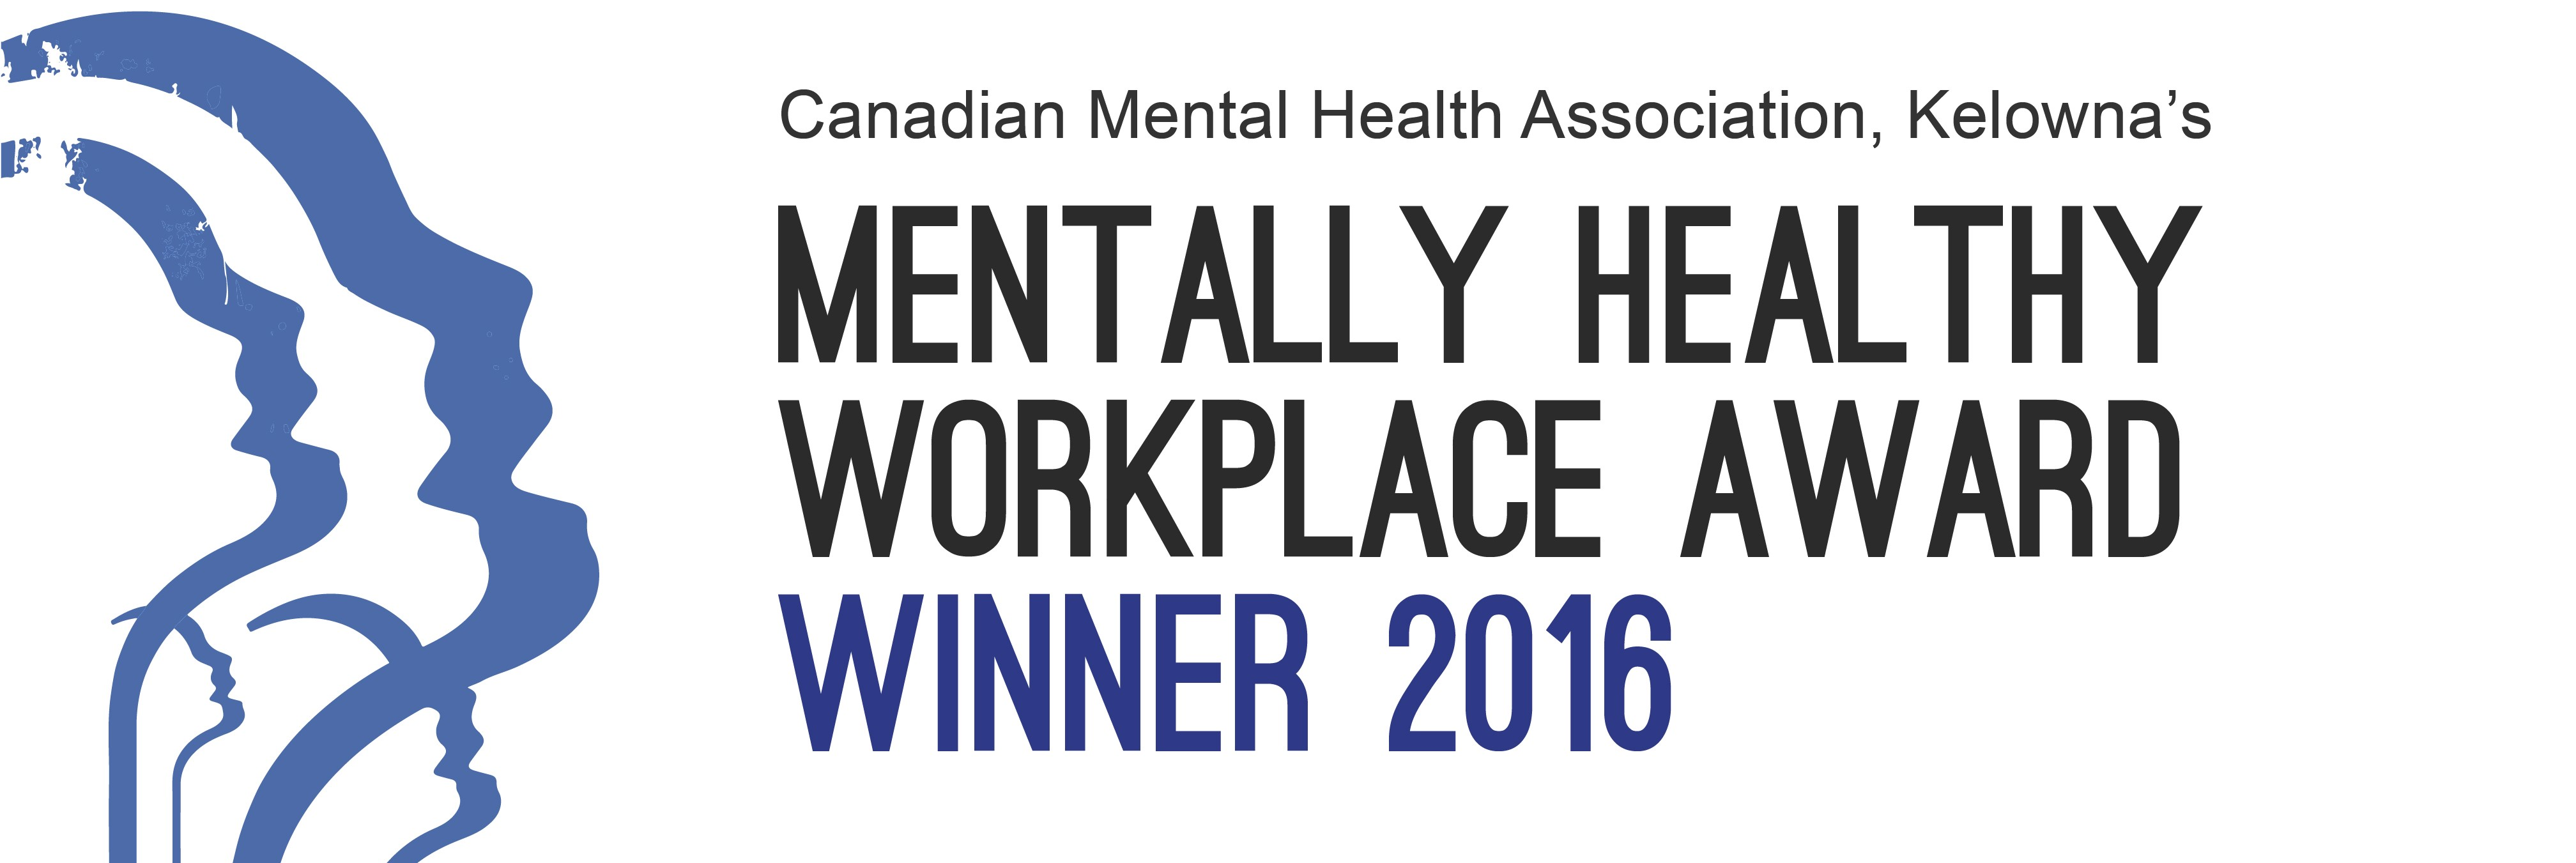 Mentally Healthy Workplace Award